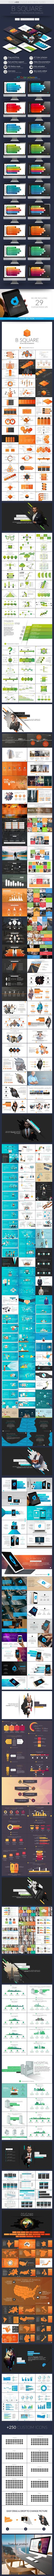 B Square Powerpoint Presentation Template  #1920x1080 #professional #dark • Click here to download ! http://graphicriver.net/item/b-square-powerpoint-presentation-template/13665035?s_rank=916&ref=pxcr